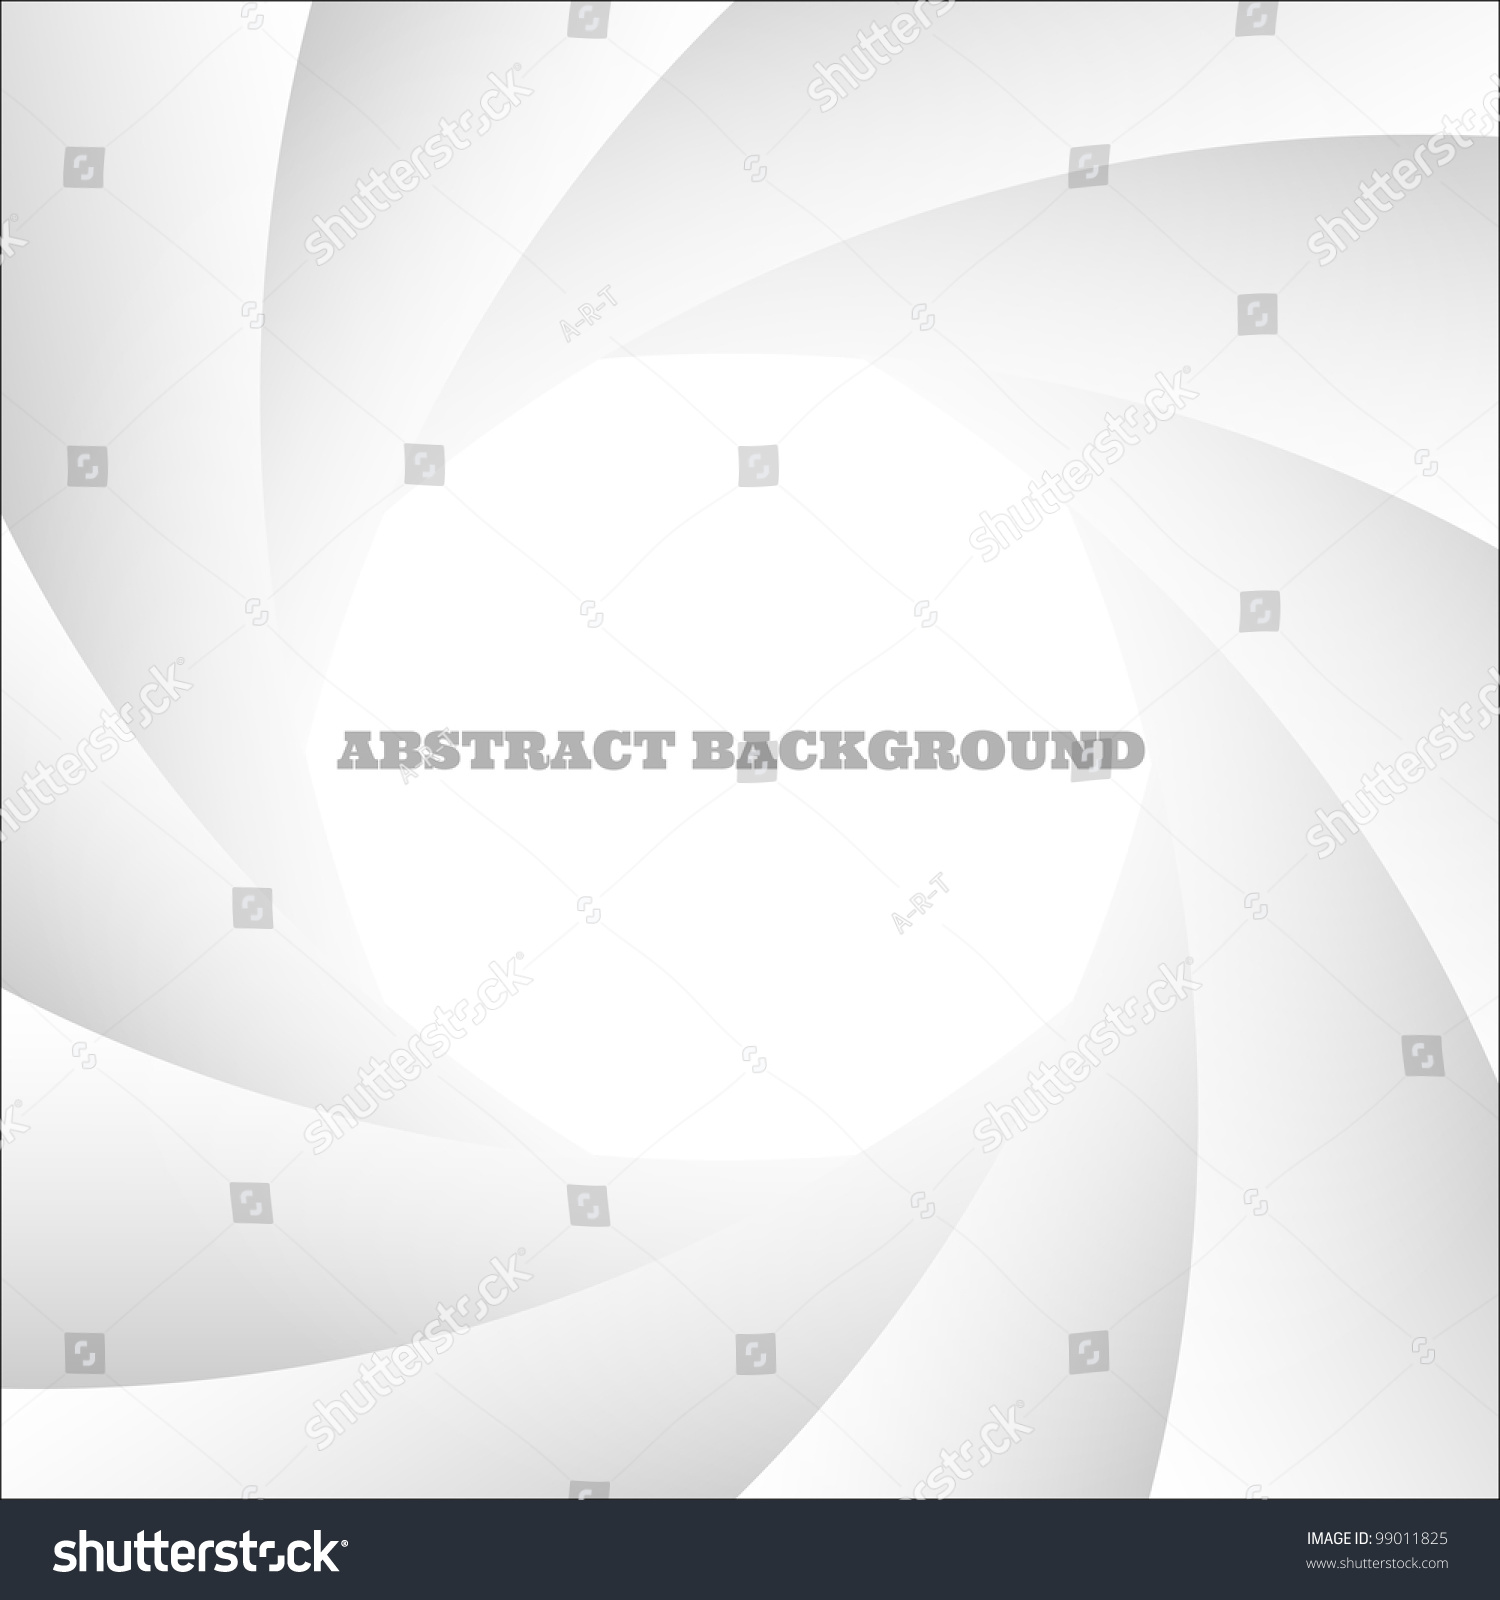 White abstract shutter photo.Vector eps10